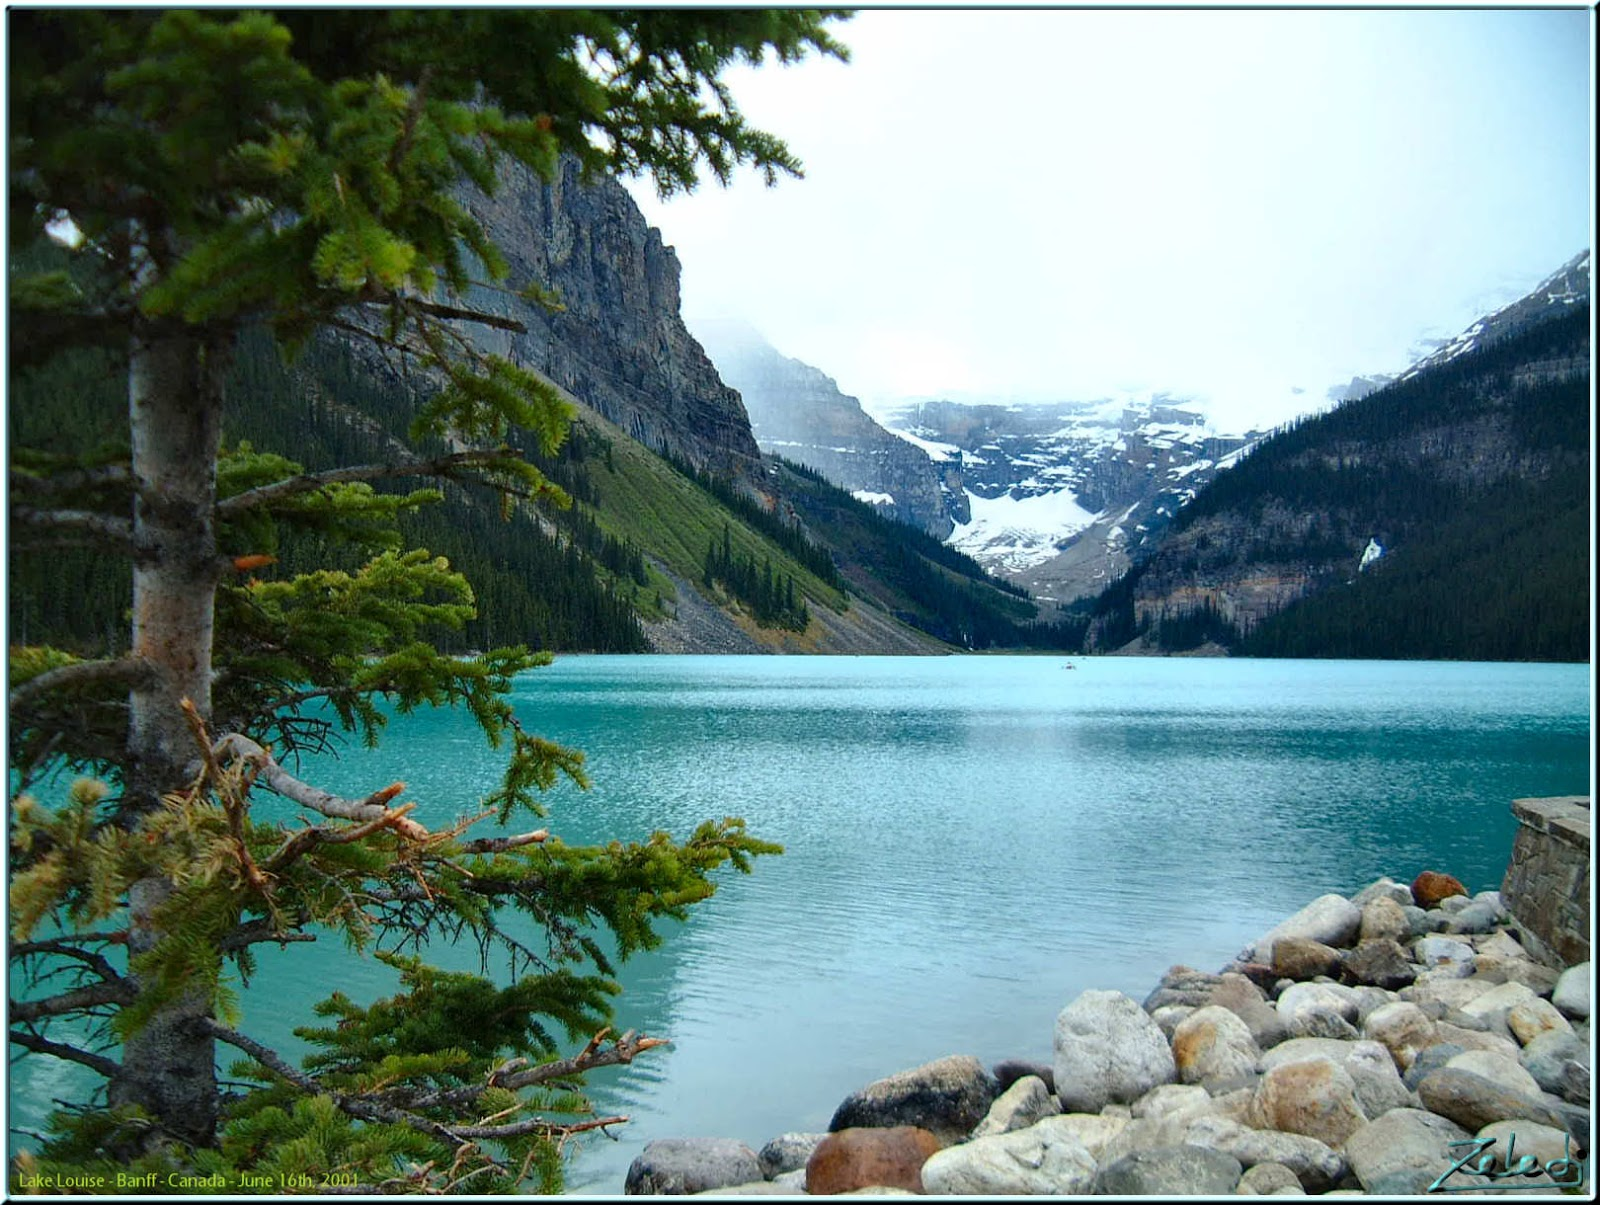 BEAUTIFUL PLACES TO VISIT : Lake Louise (Canada